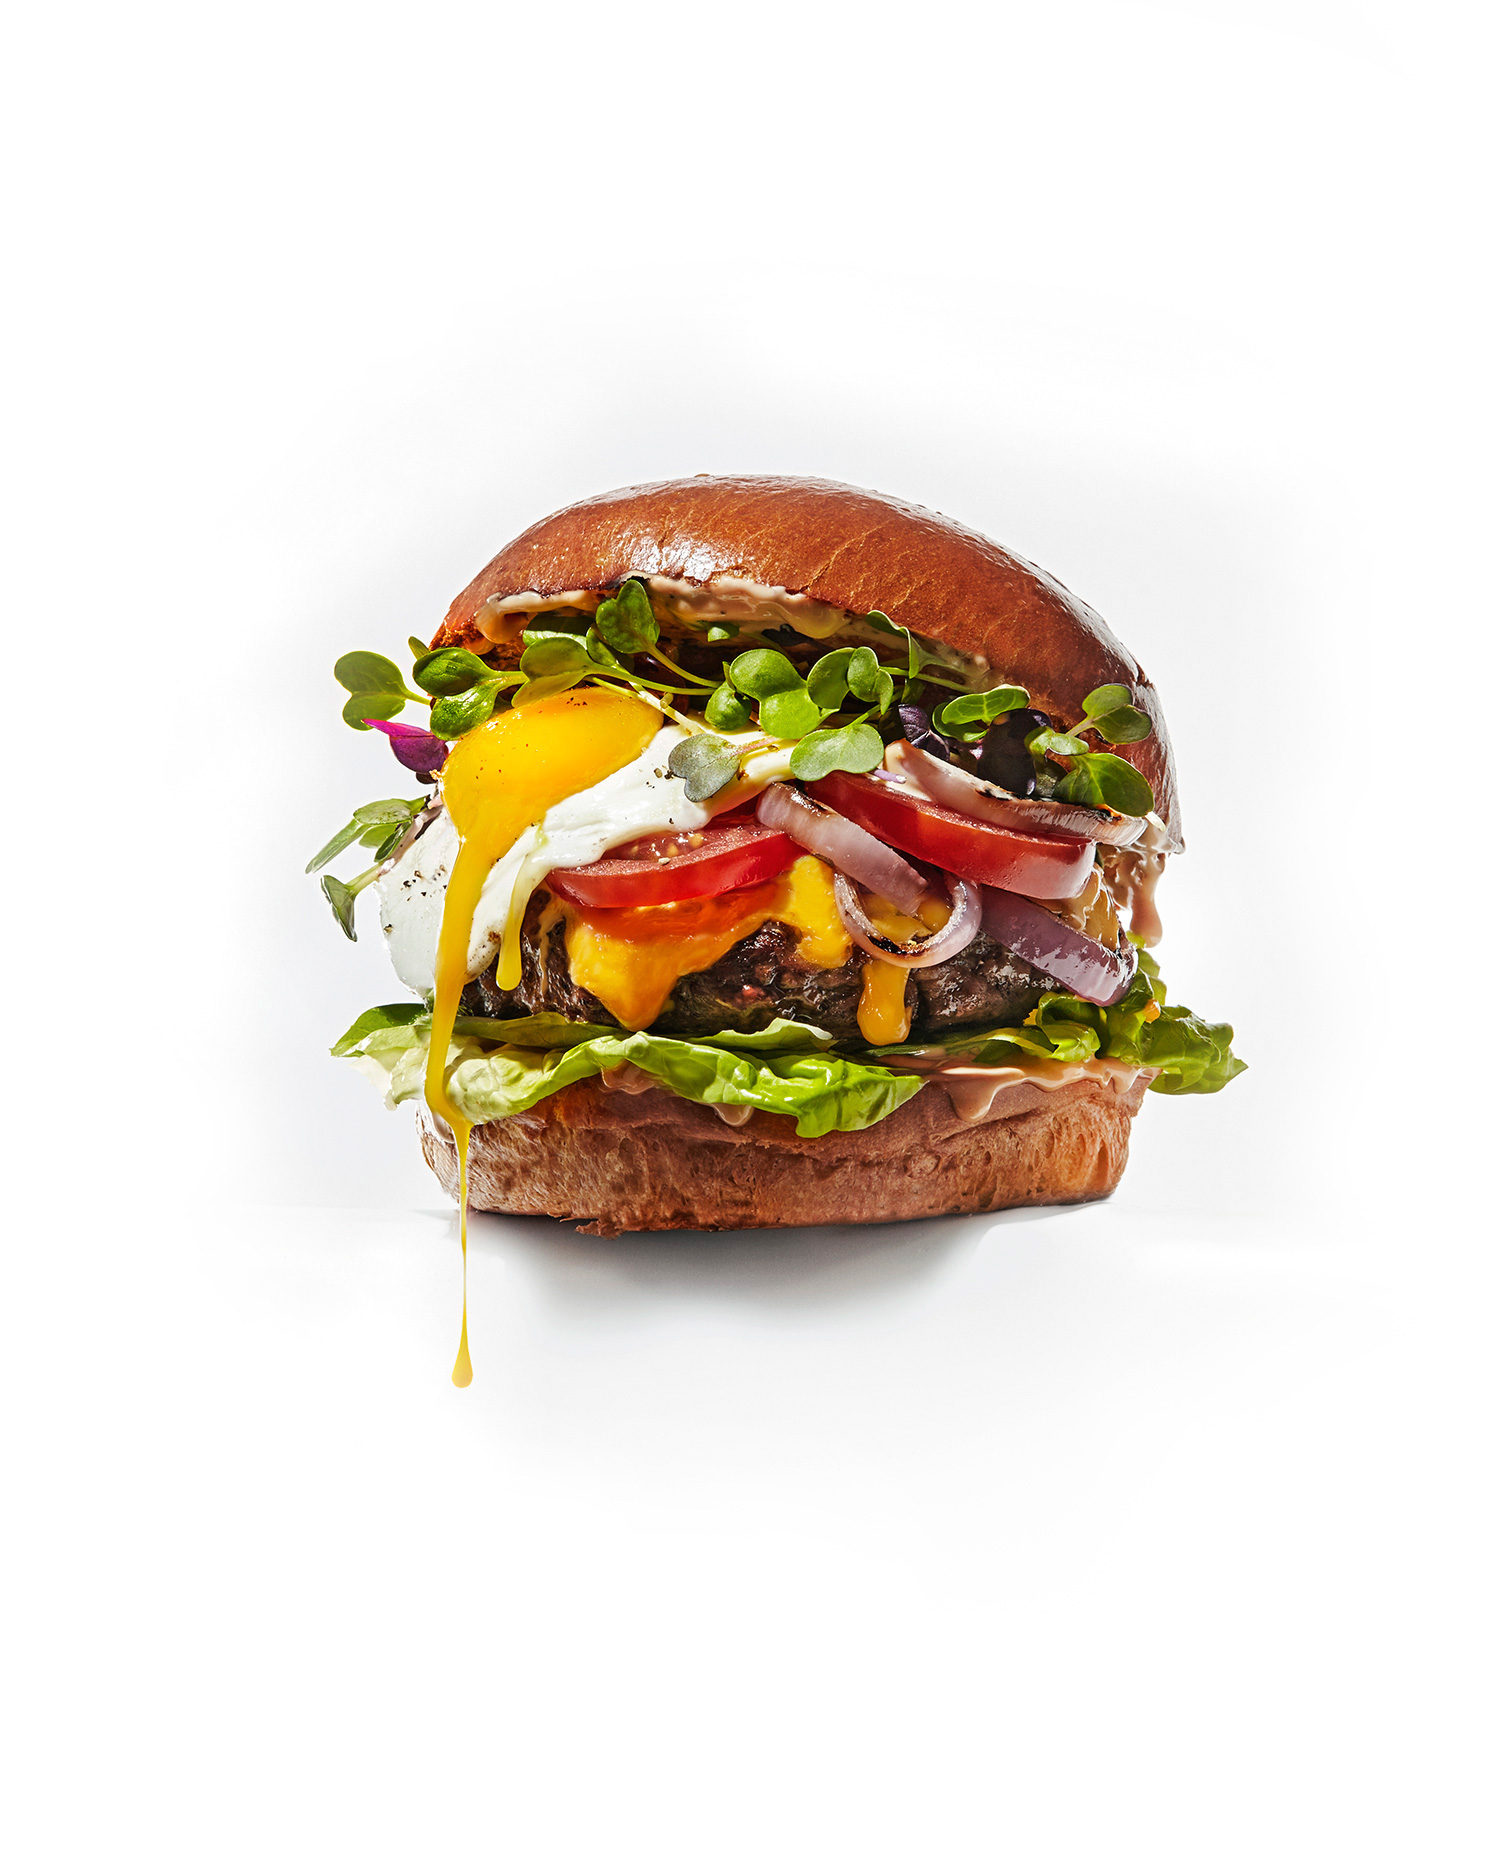 Burger_Suetallon_TEST_RV_5724_BIGBurger_FINAL_WEB